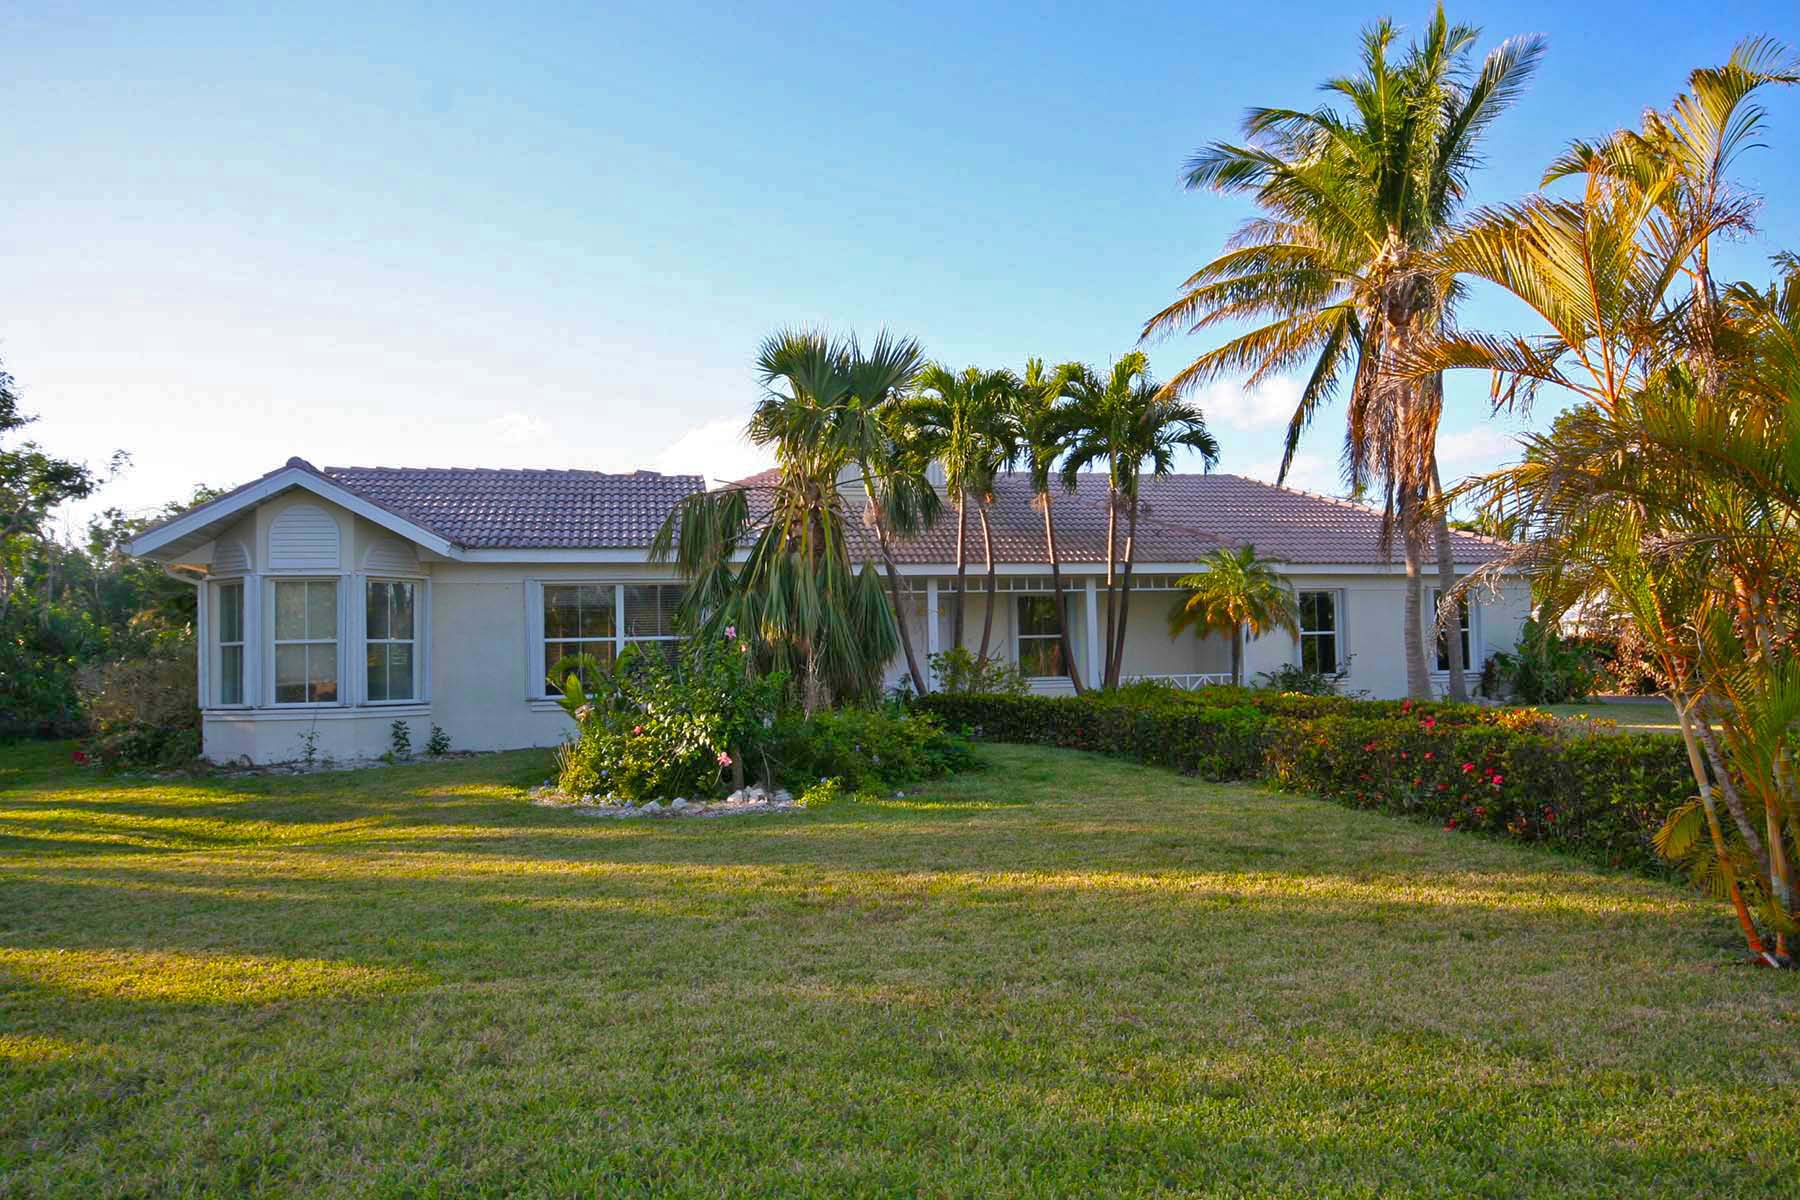 Single Family Home for Sale at Excellent Home Adjacent to Beach in Gated Community of Fortune Cay! Fortune Beach, Grand Bahama, Bahamas